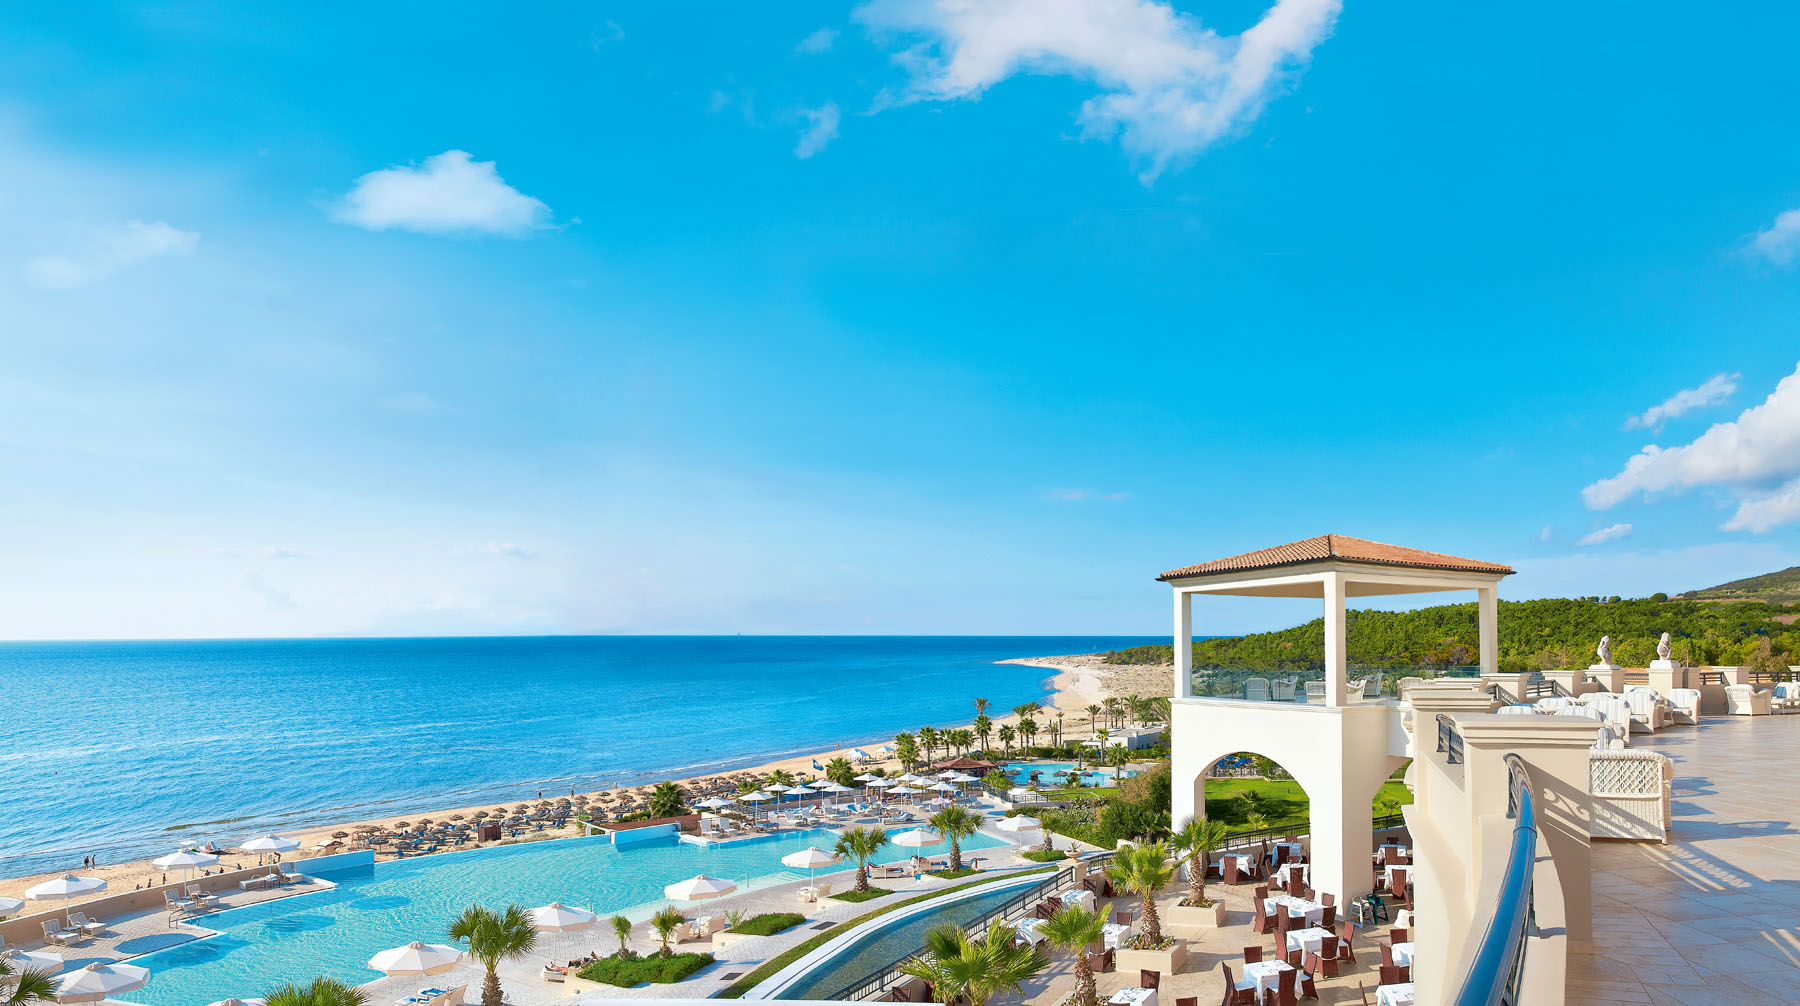 Grecotel-Olympia-Riviera-A-magical-resort-with-sweeping-views-of-the-Ionian-Sea-from-every-corner (1)